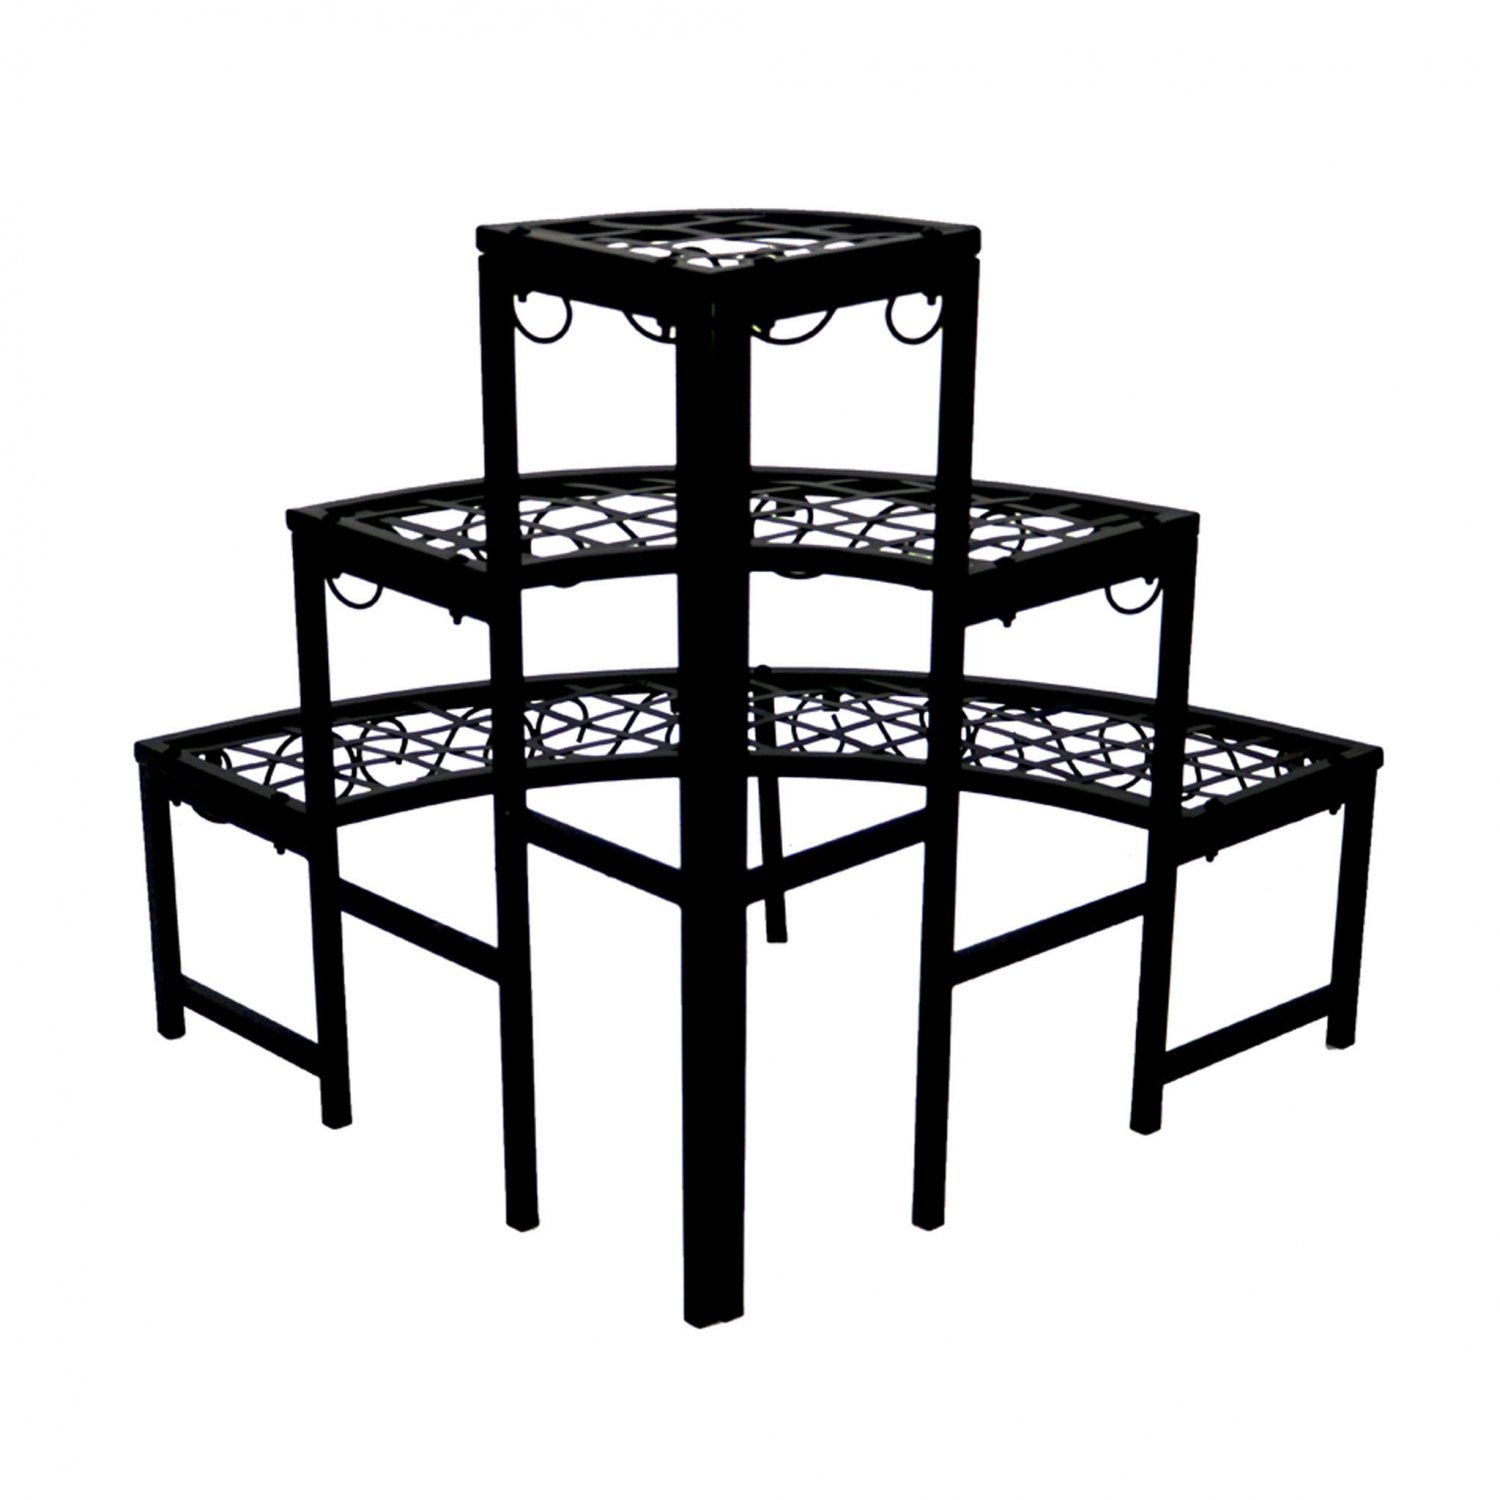 3 Tier Corner Metal Garden Flower Plant Stand Display Shelf